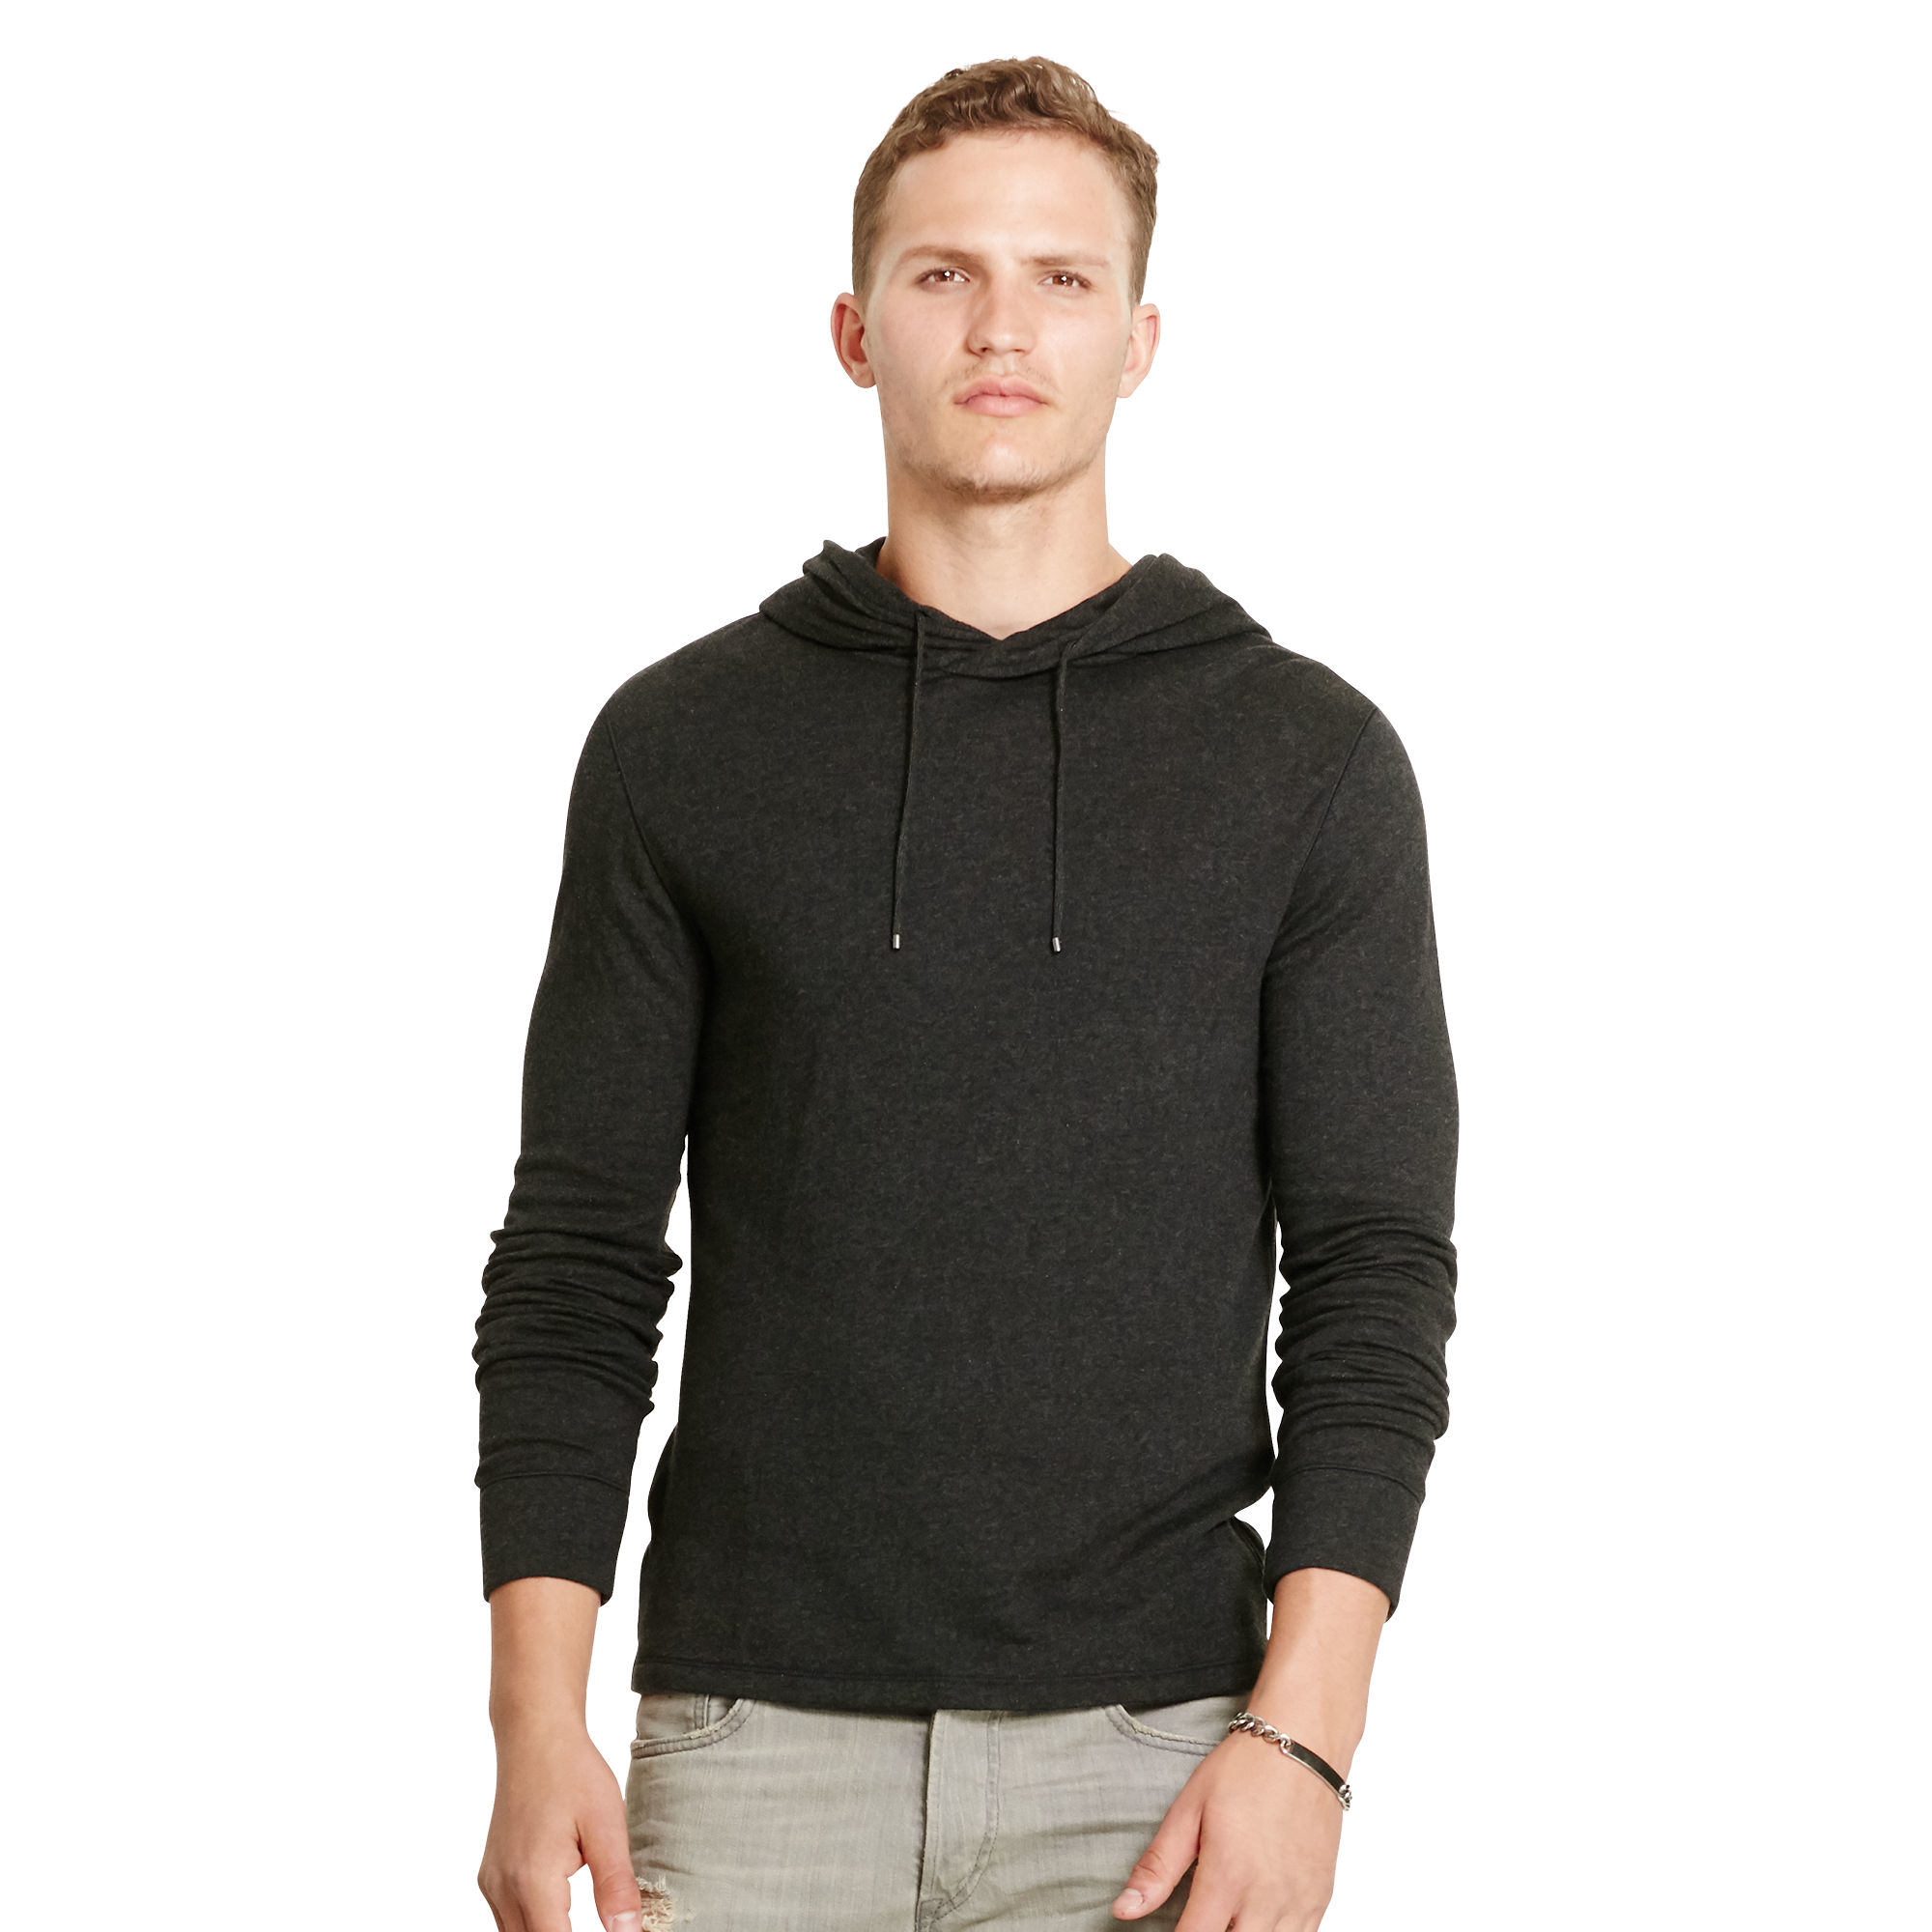 polo ralph lauren double knit tech hoodie in black for men lyst. Black Bedroom Furniture Sets. Home Design Ideas